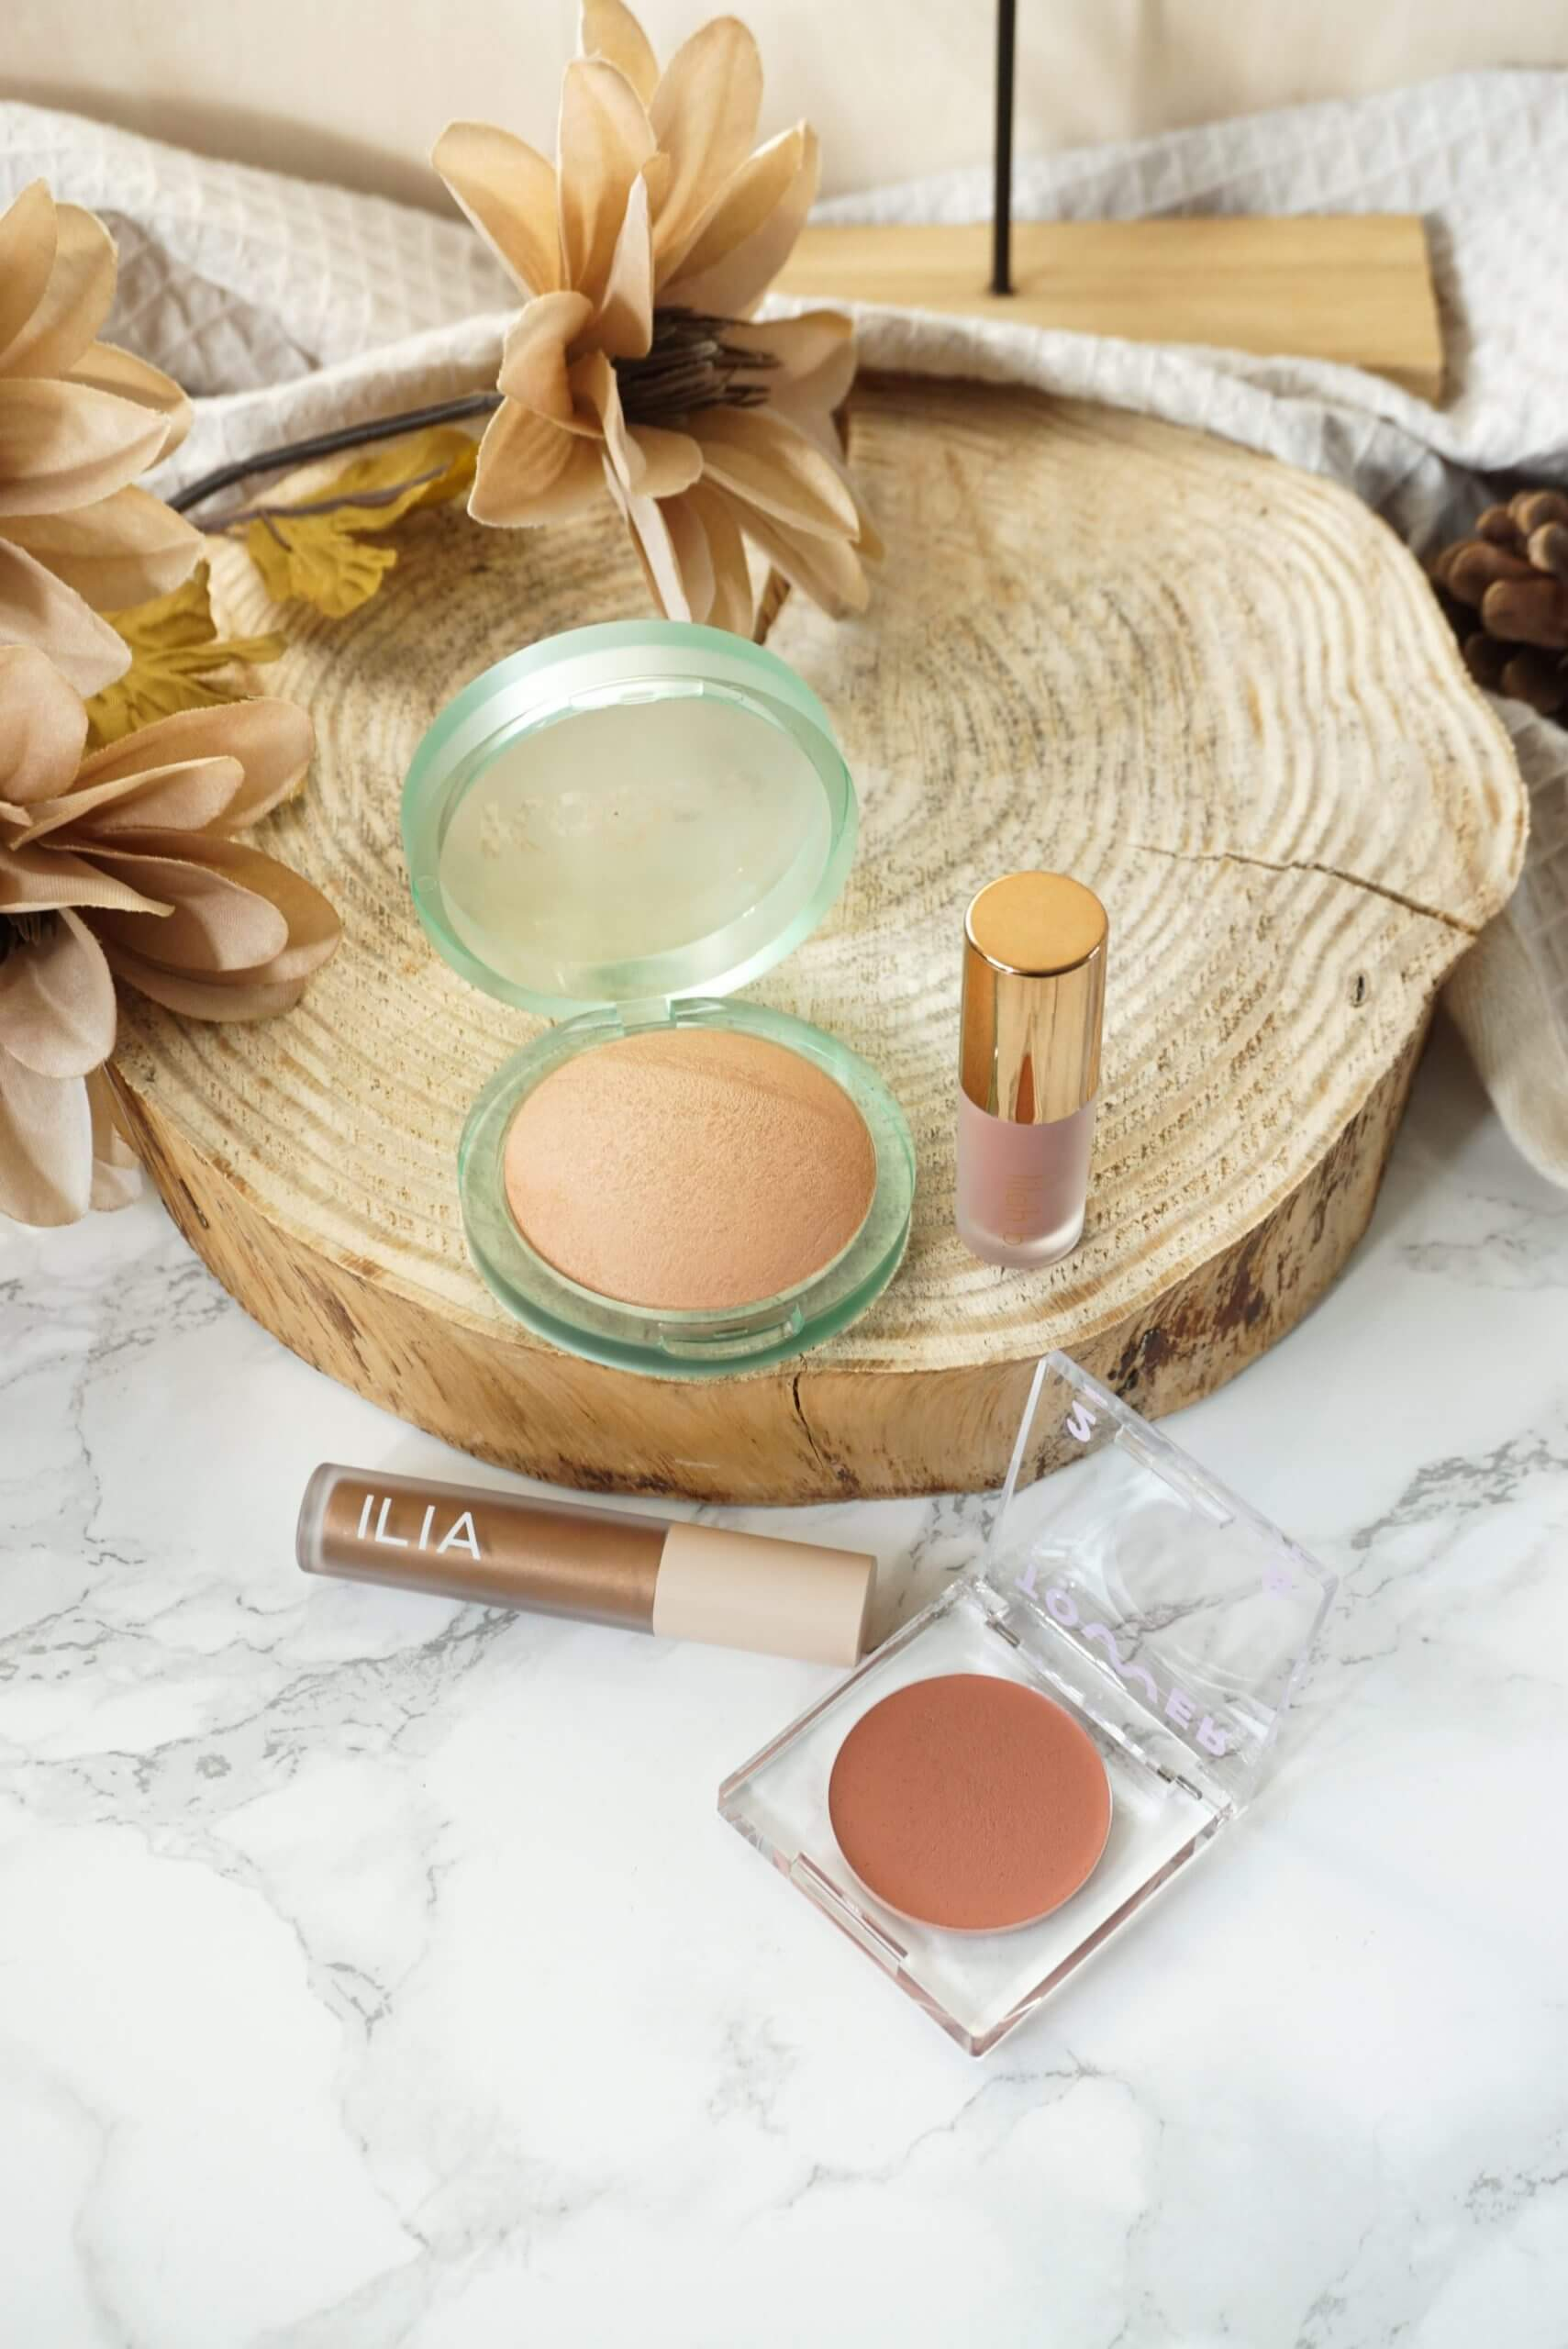 First Time Testing Out 4 Clean Beauty Brands